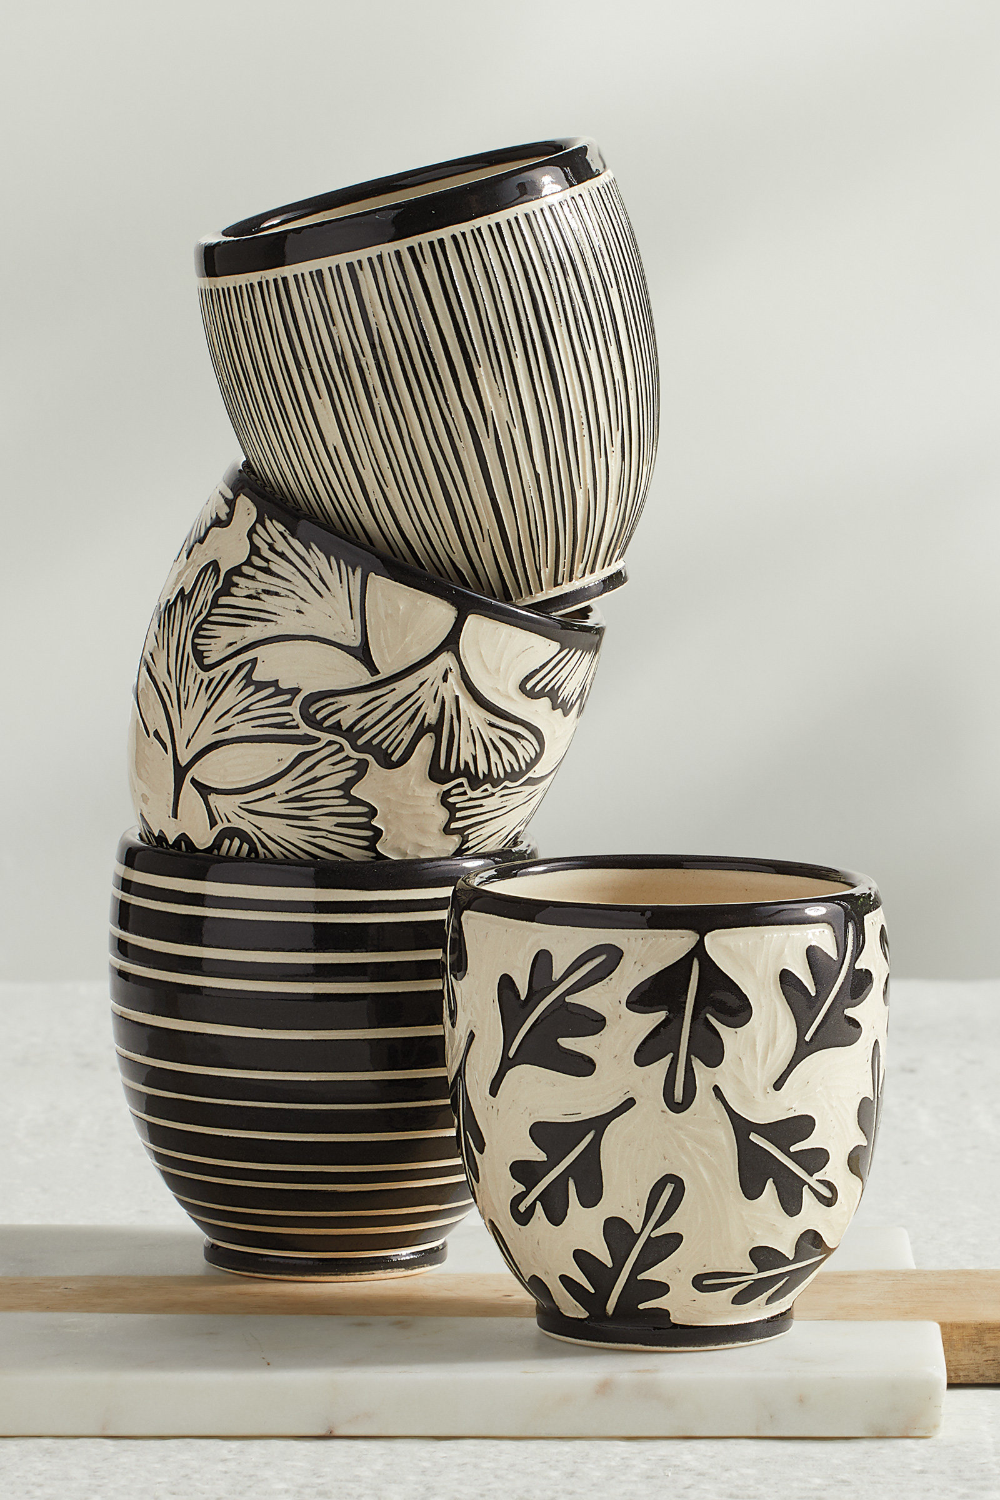 Ceramic Cups by Jennifer Falter. A whimsical wheel thrown ceramic cup, decorated with sgraffito using black slip, featuring a a pattern of oak leaves. Glazed to give a glossy finish inside and out. Each piece is unique and will vary slightly from piece to piece. Holds approximately 16 oz. of hot or cold liquid. Microwave and dishwasher safe. Signed by the artist with a stamp.